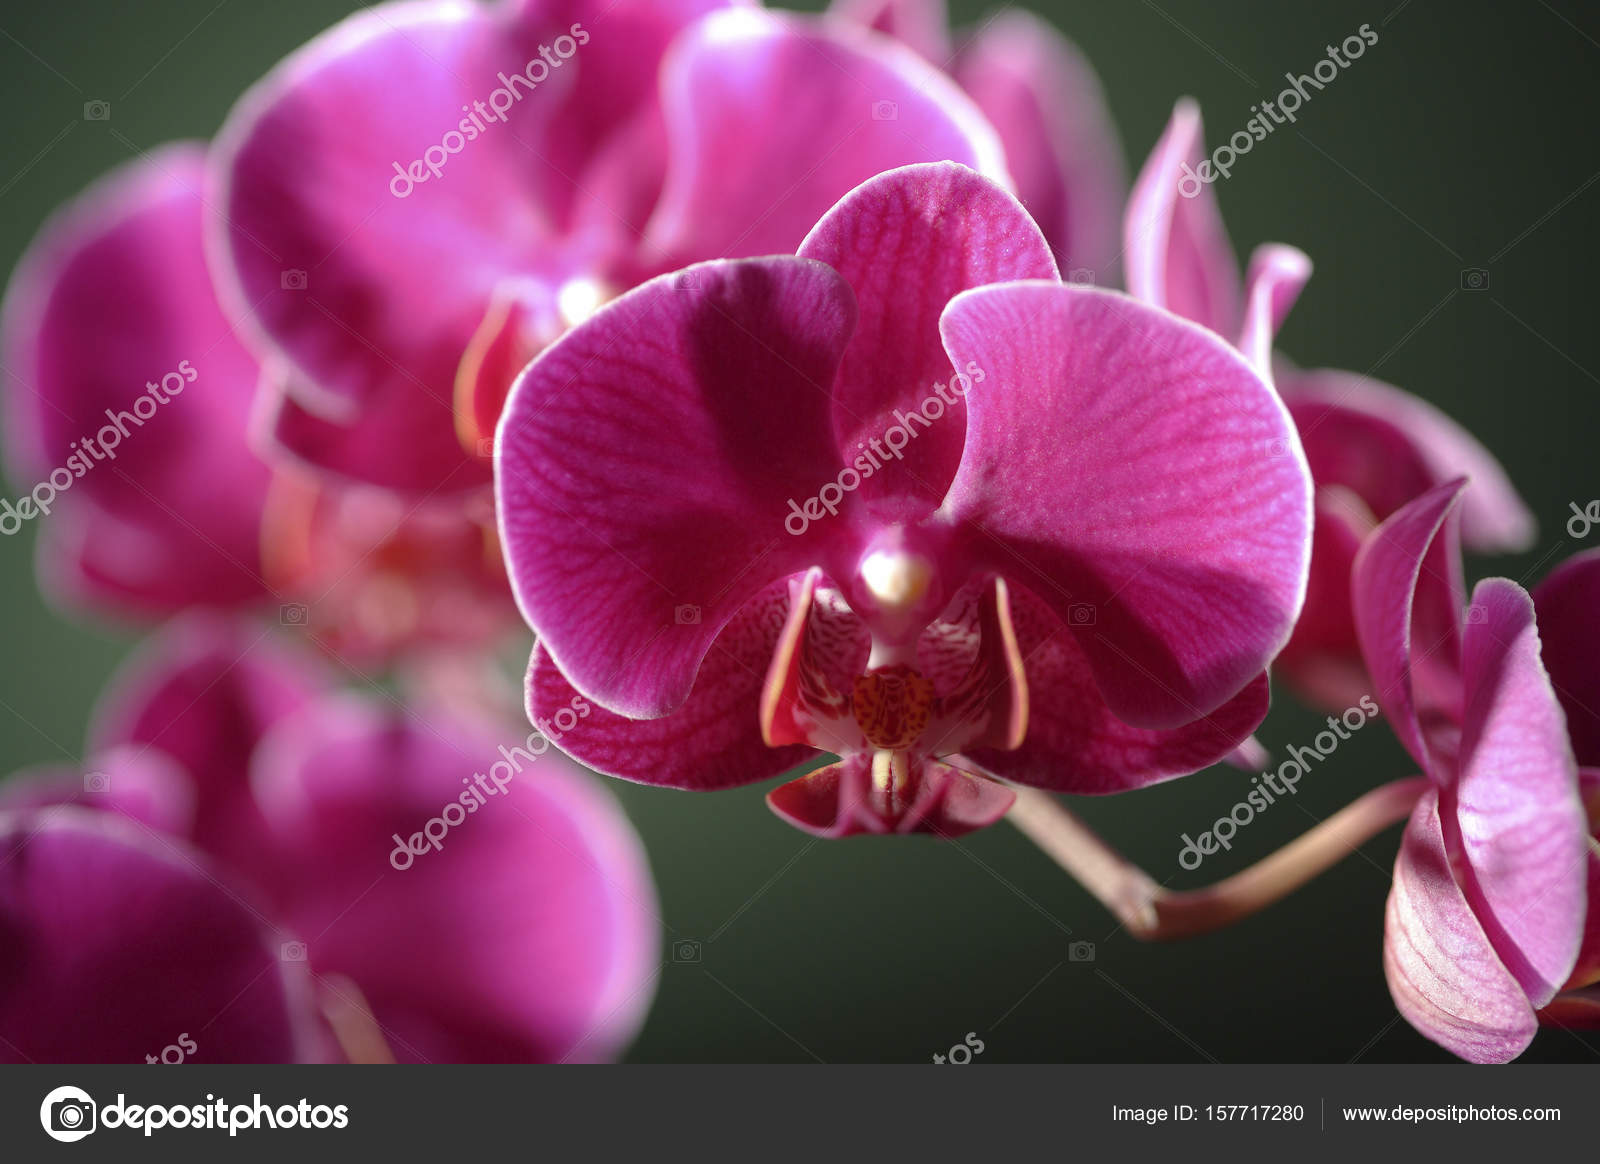 Beautiful orchid flowers stock photo topphoto 157717280 beautiful orchid flowers stock photo izmirmasajfo